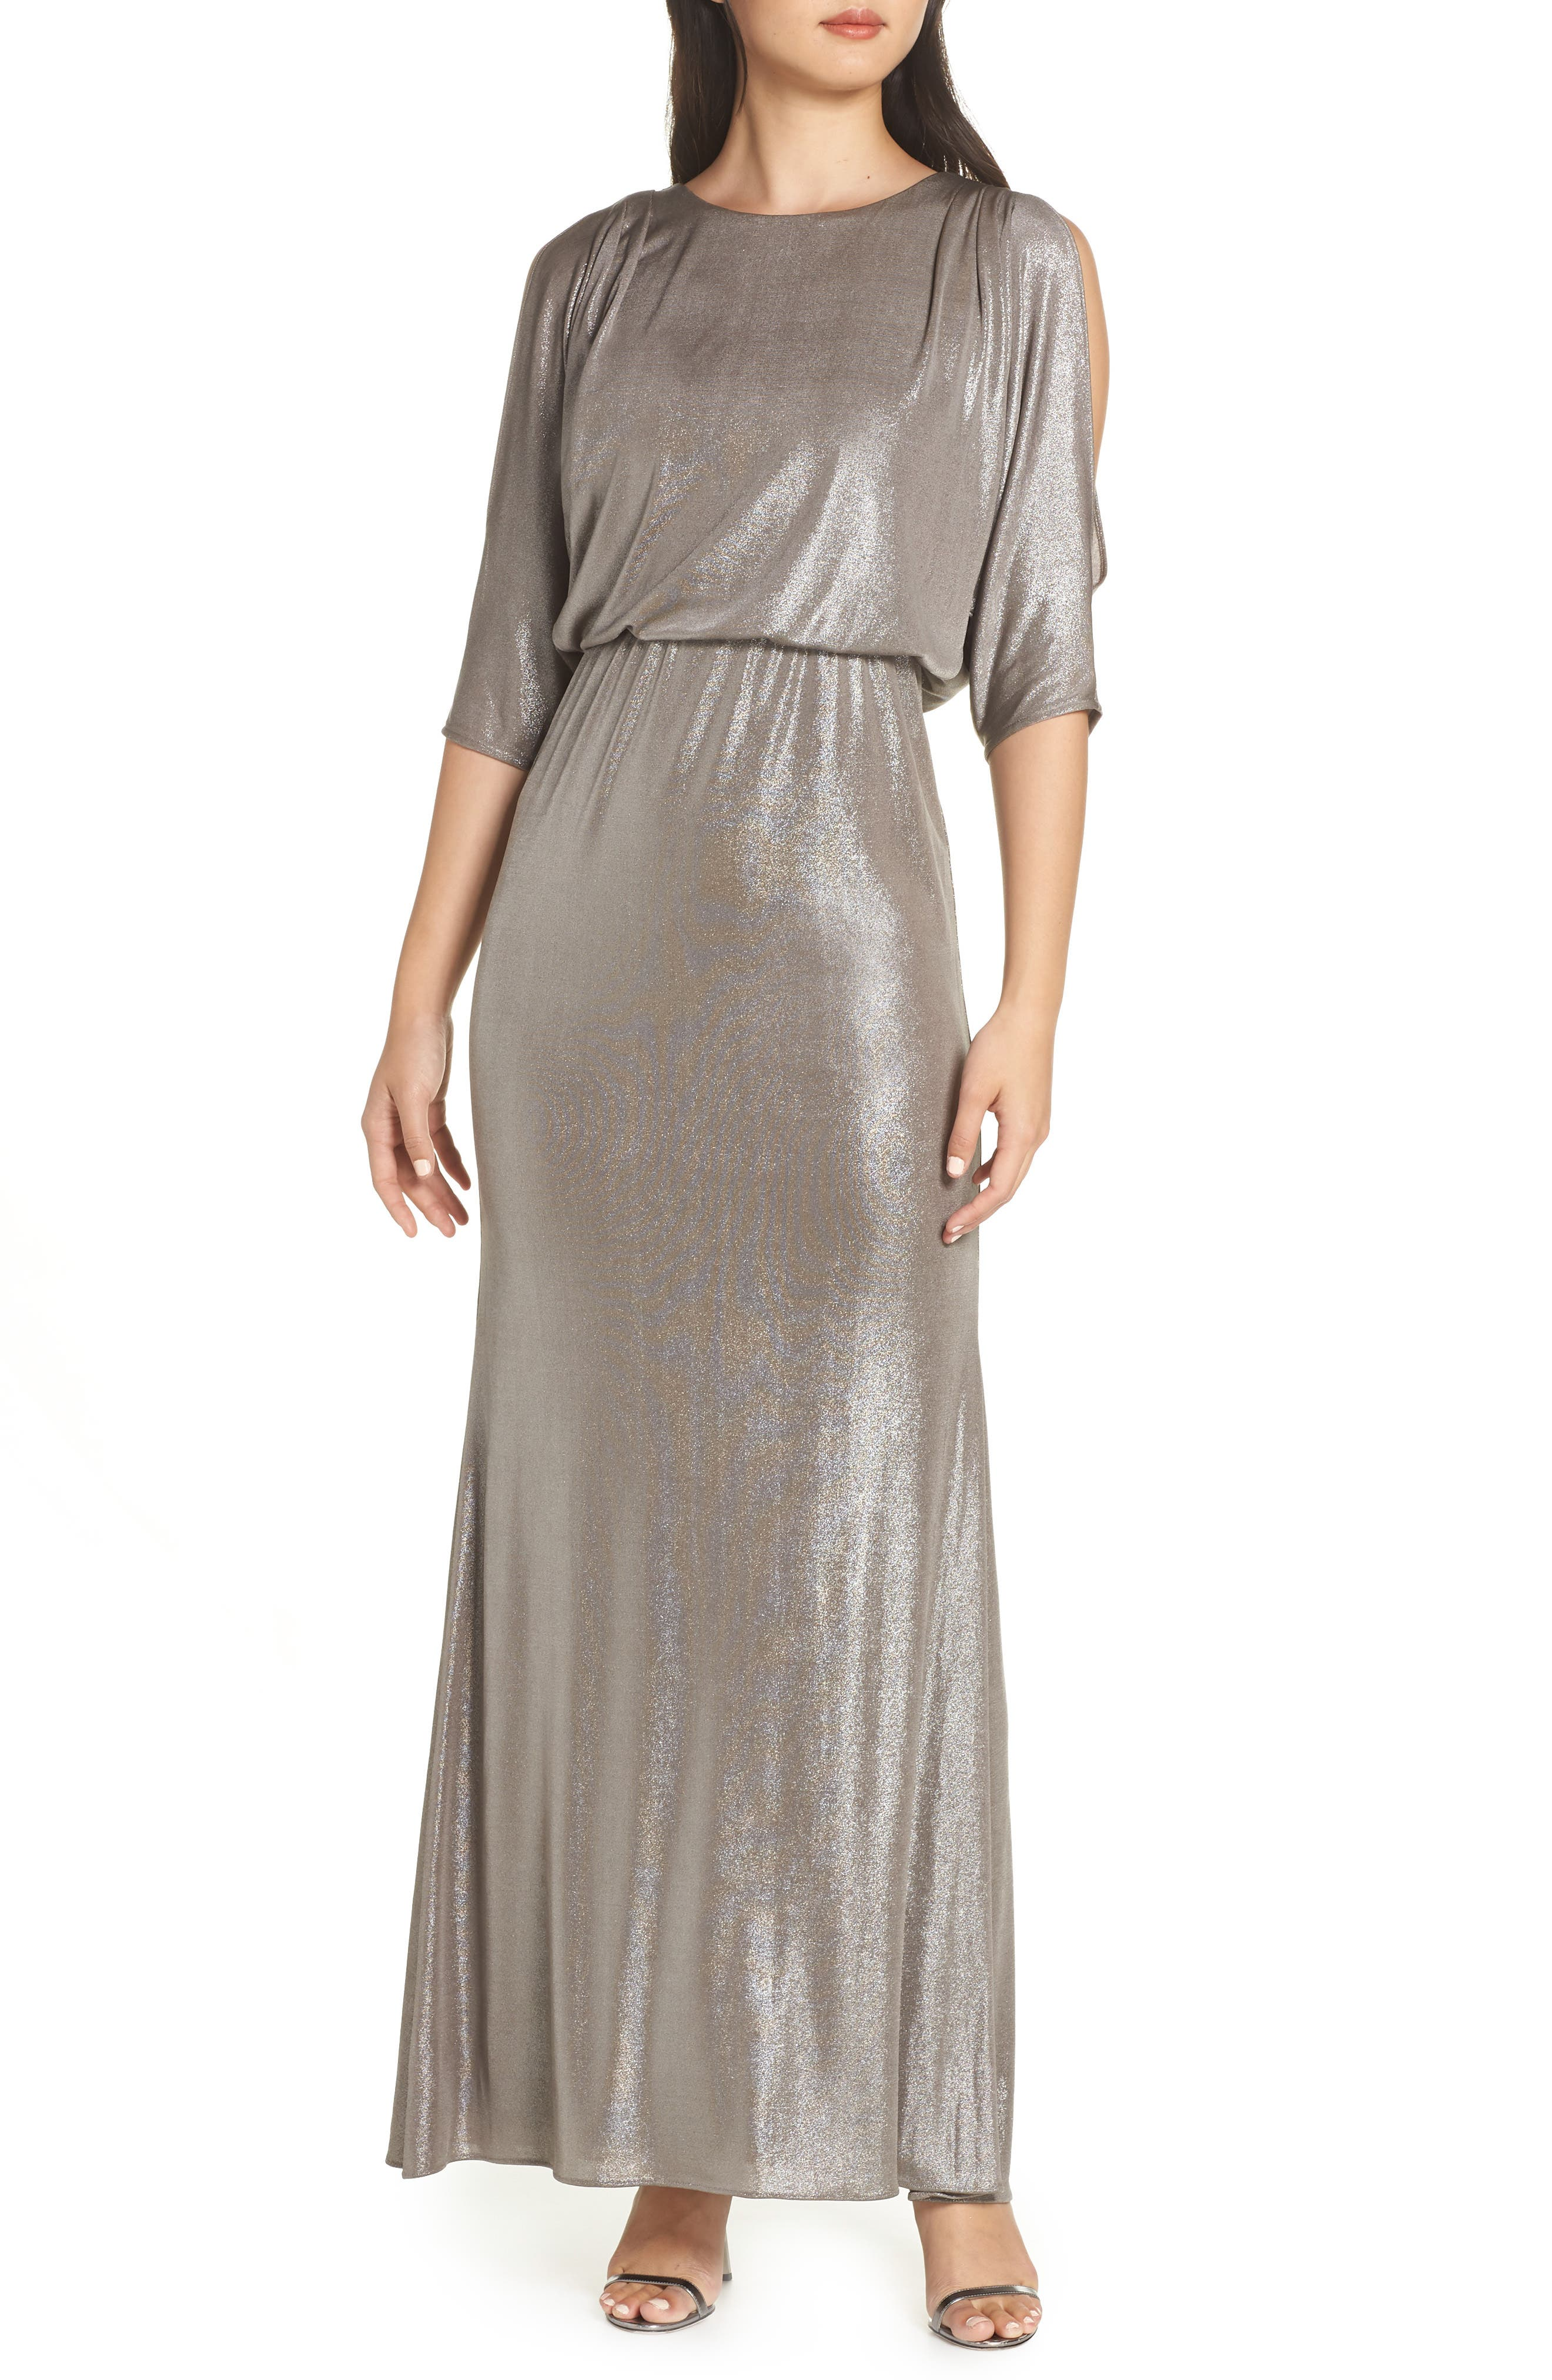 Adrianna Papell Gowns On Sale